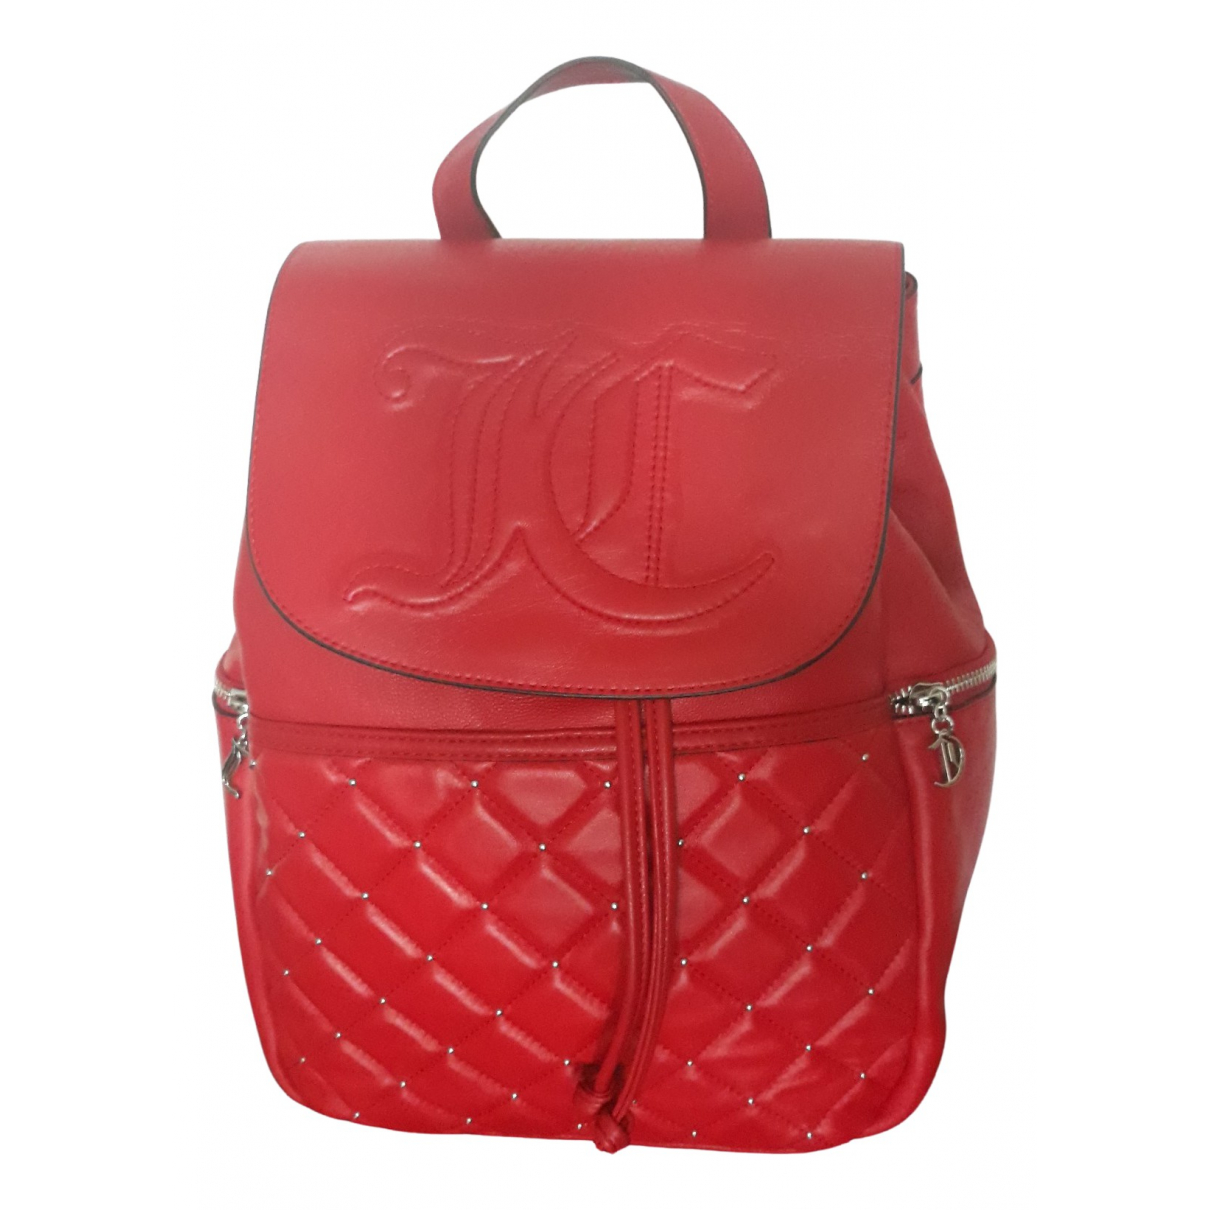 Juicy Couture \N Rucksaecke in  Rot Leder